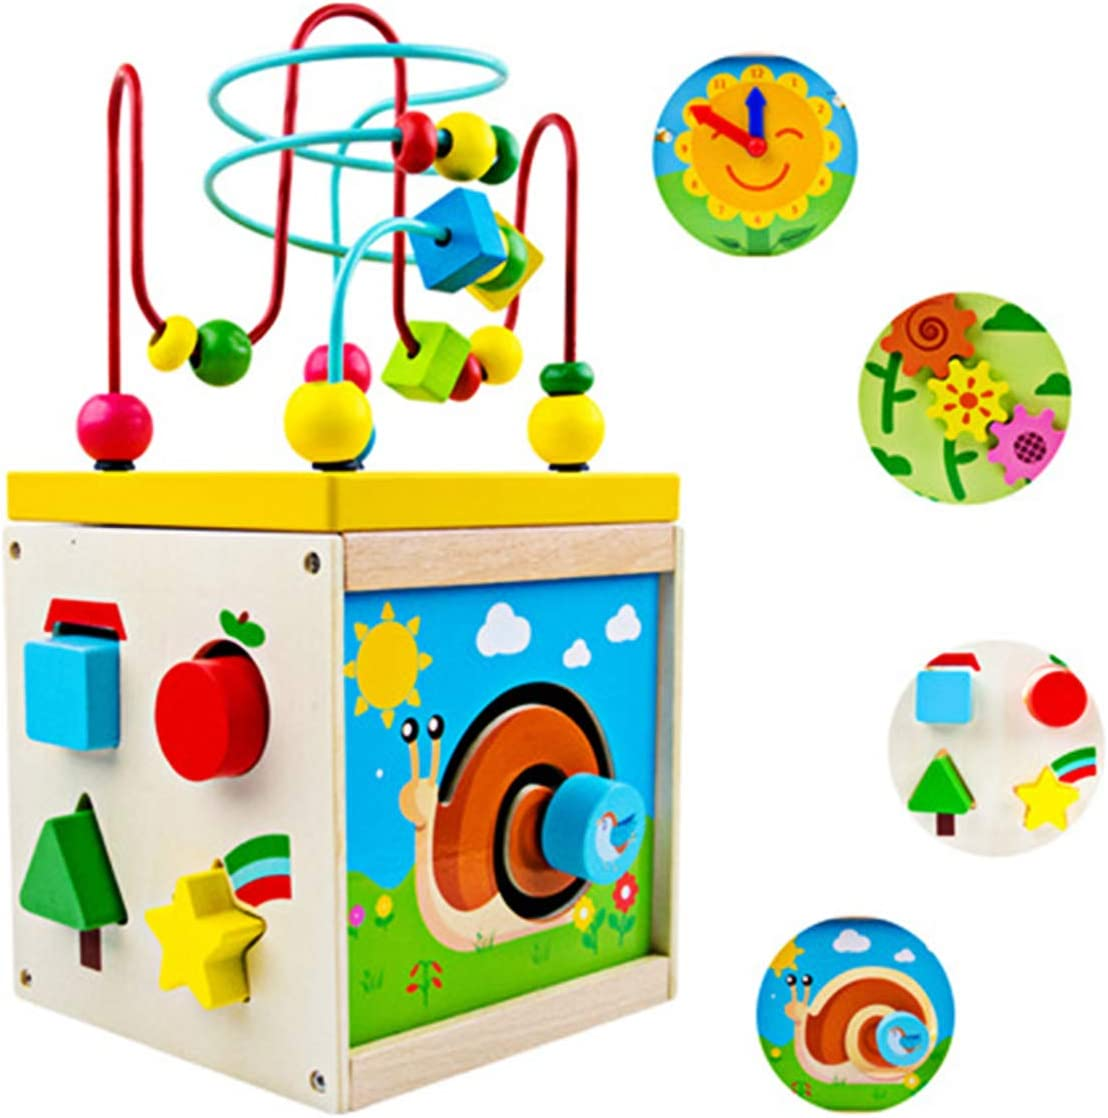 Multipurpose Activity Cube/Center Bead Maze Shape Sorter Wooden Early Educational Toy Montessori Bead Maze Standing Toy for Preschool Toddler Gift for Girls Boys Aged 3 4 5 6